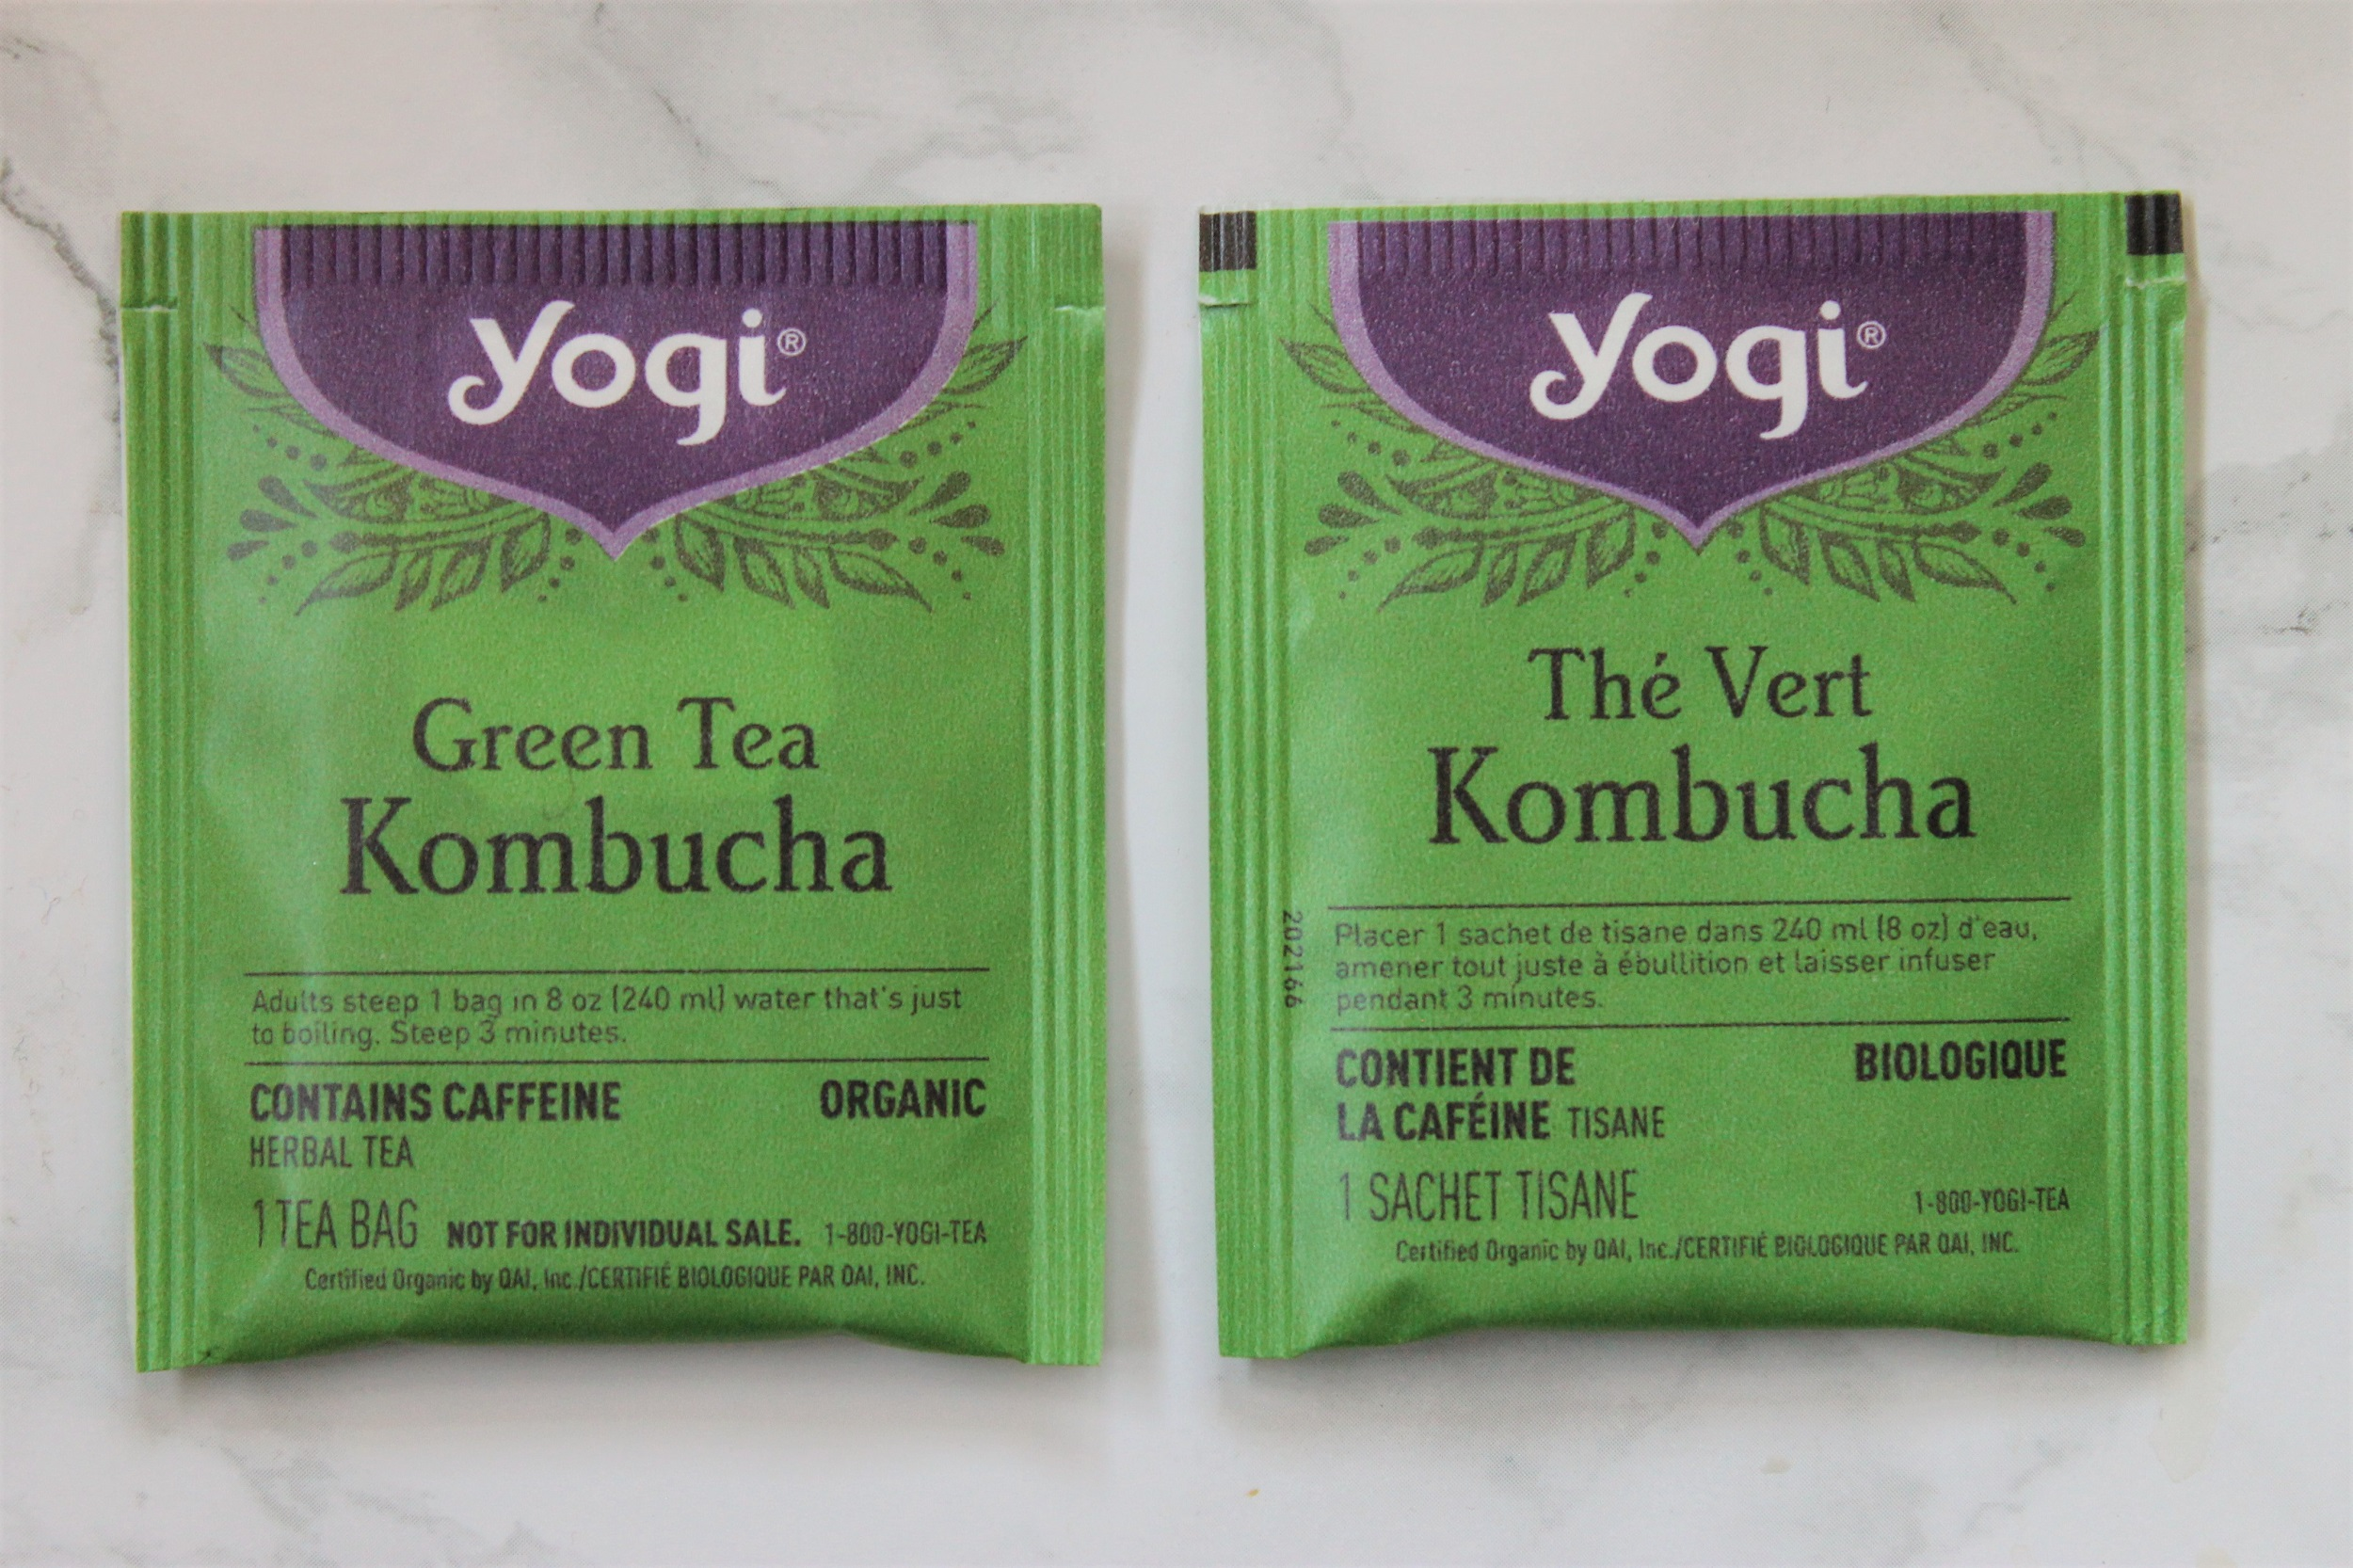 yogi tea green kombucha teabags